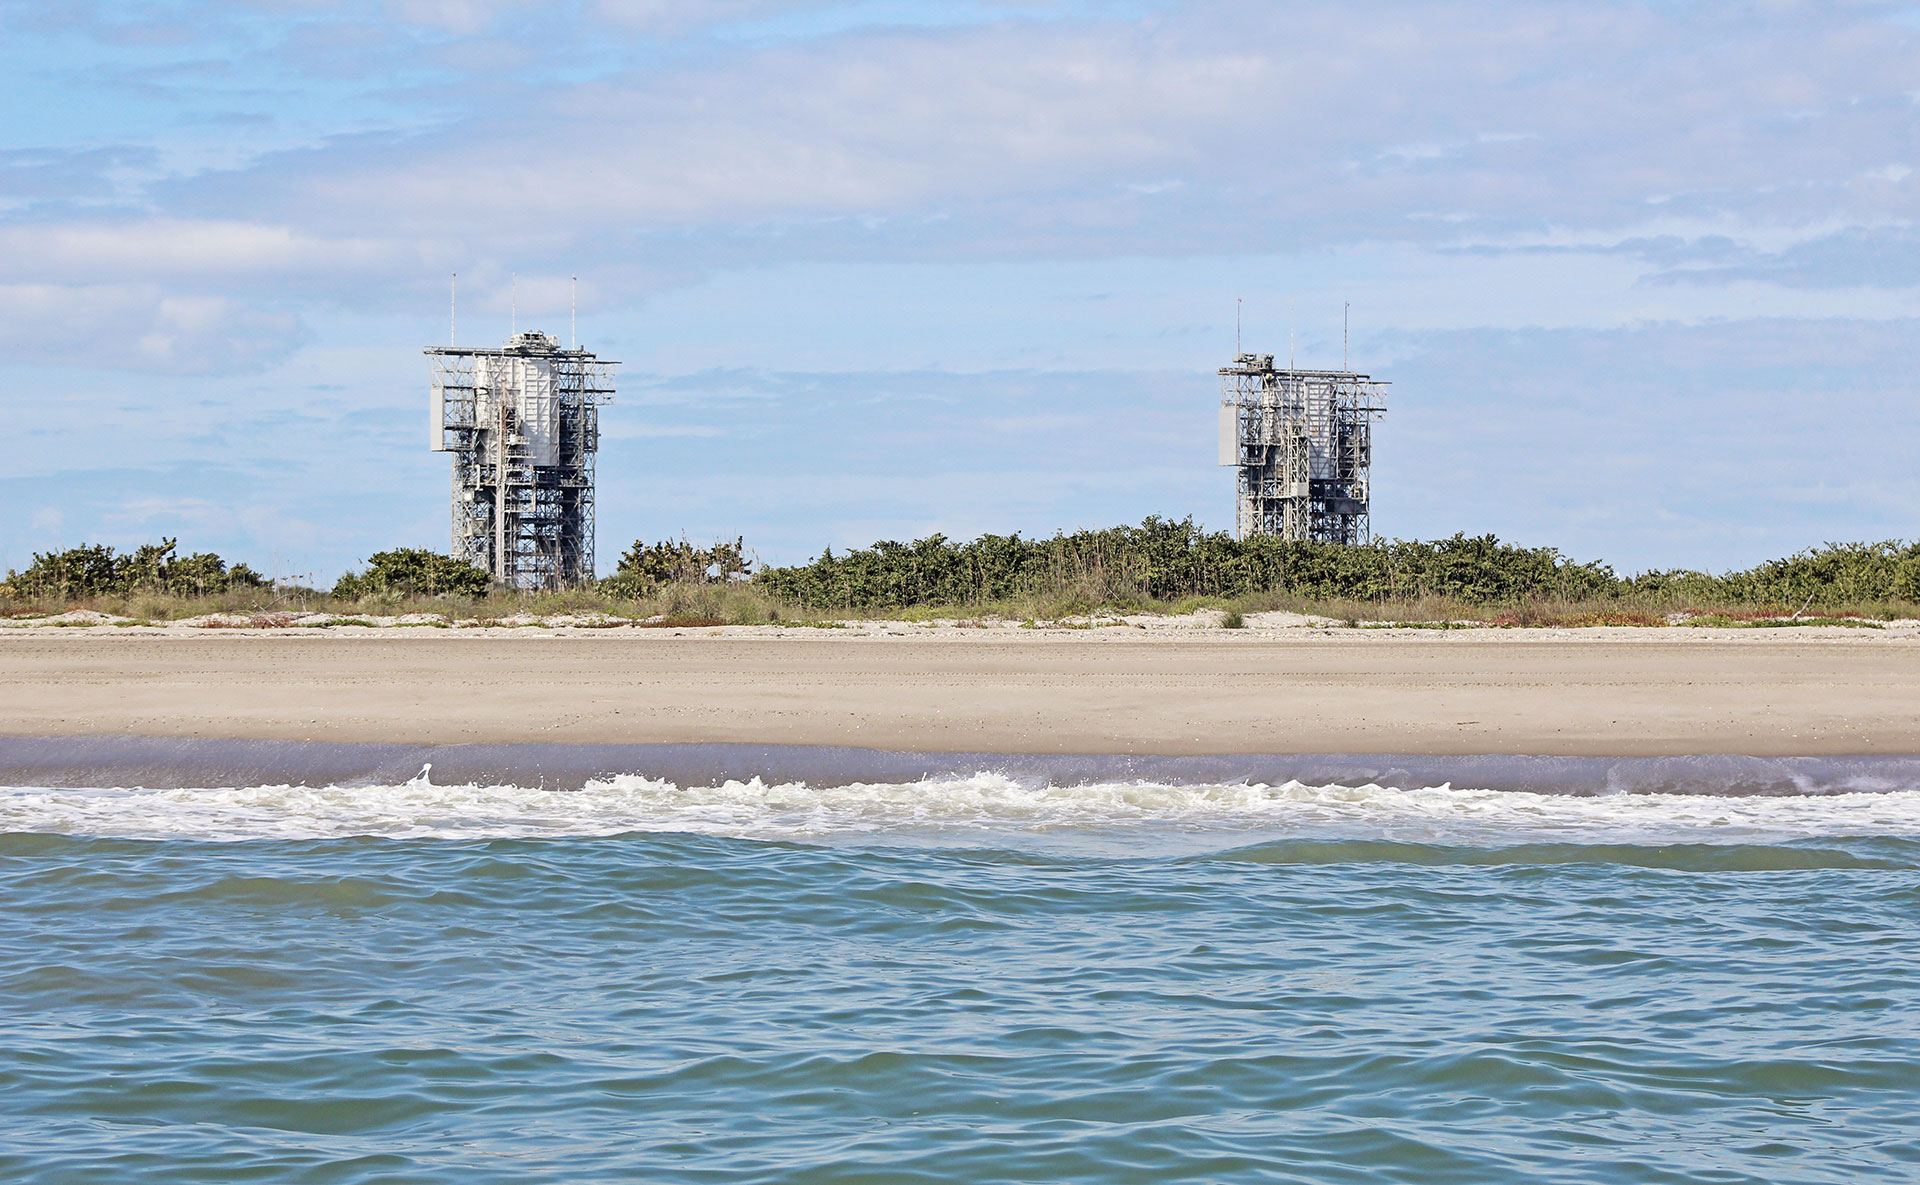 Cape Canaveral Sights